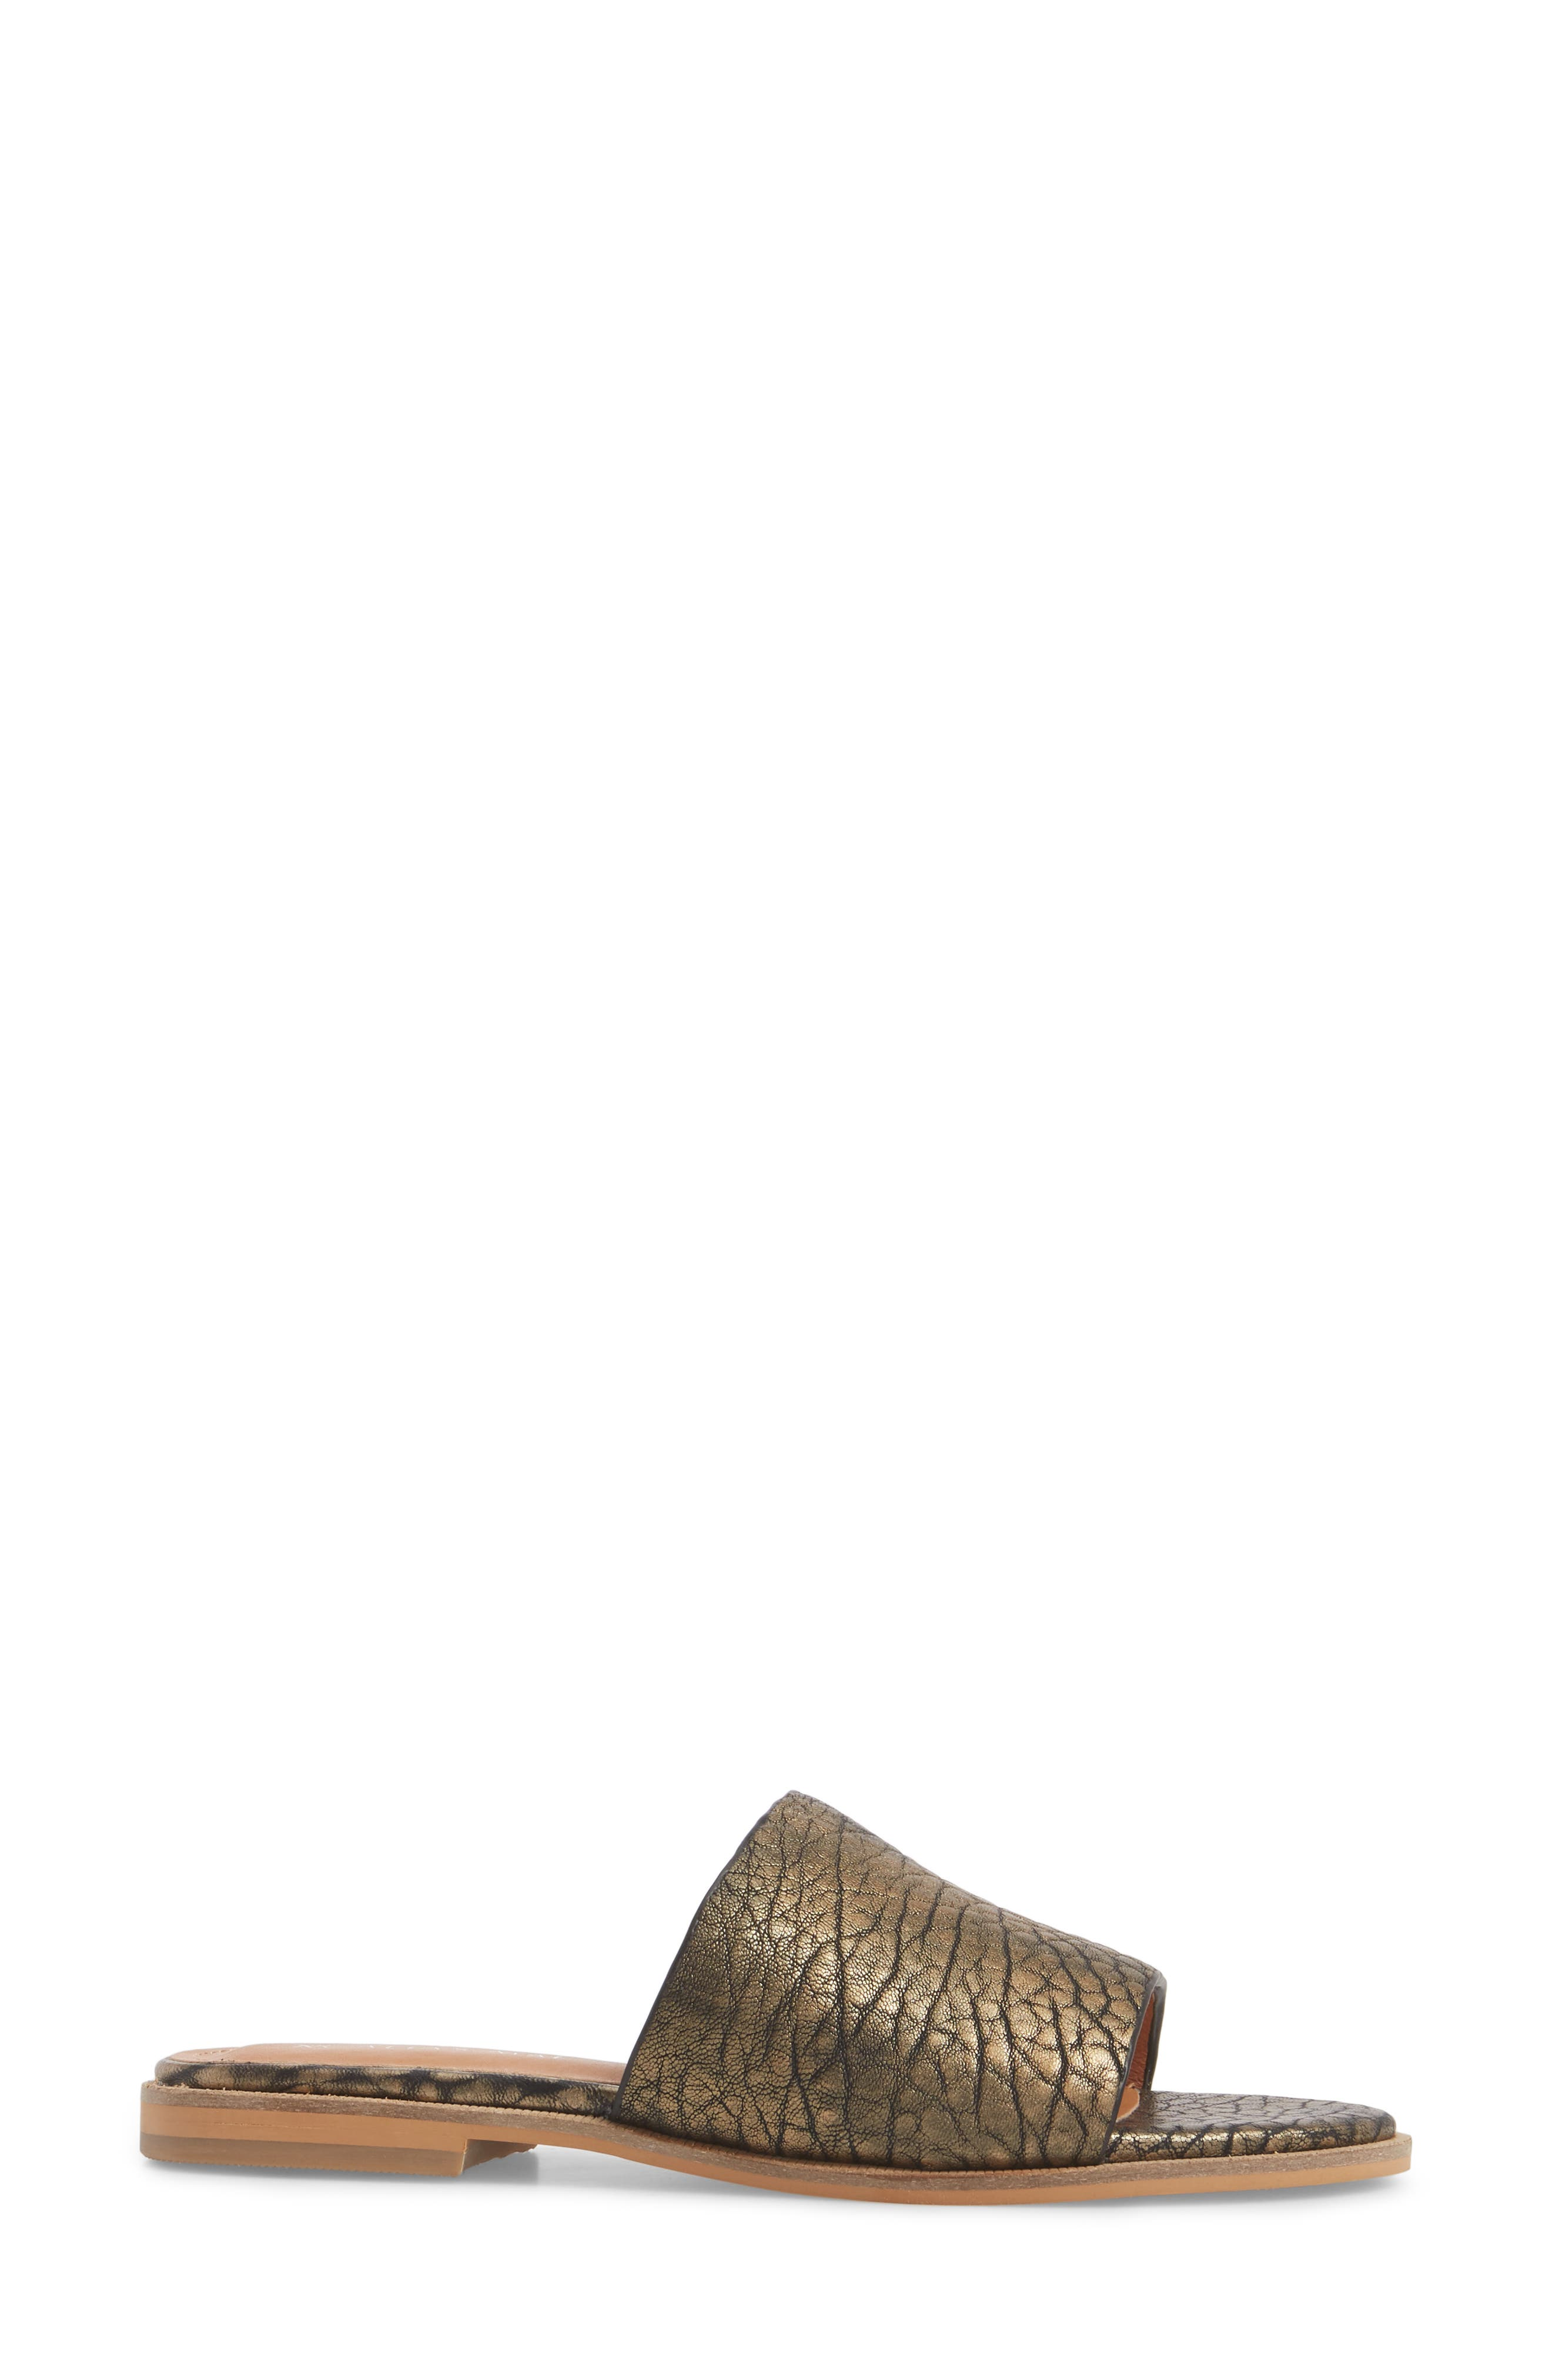 Therapy Slide Sandal,                             Alternate thumbnail 3, color,                             Gold Leather